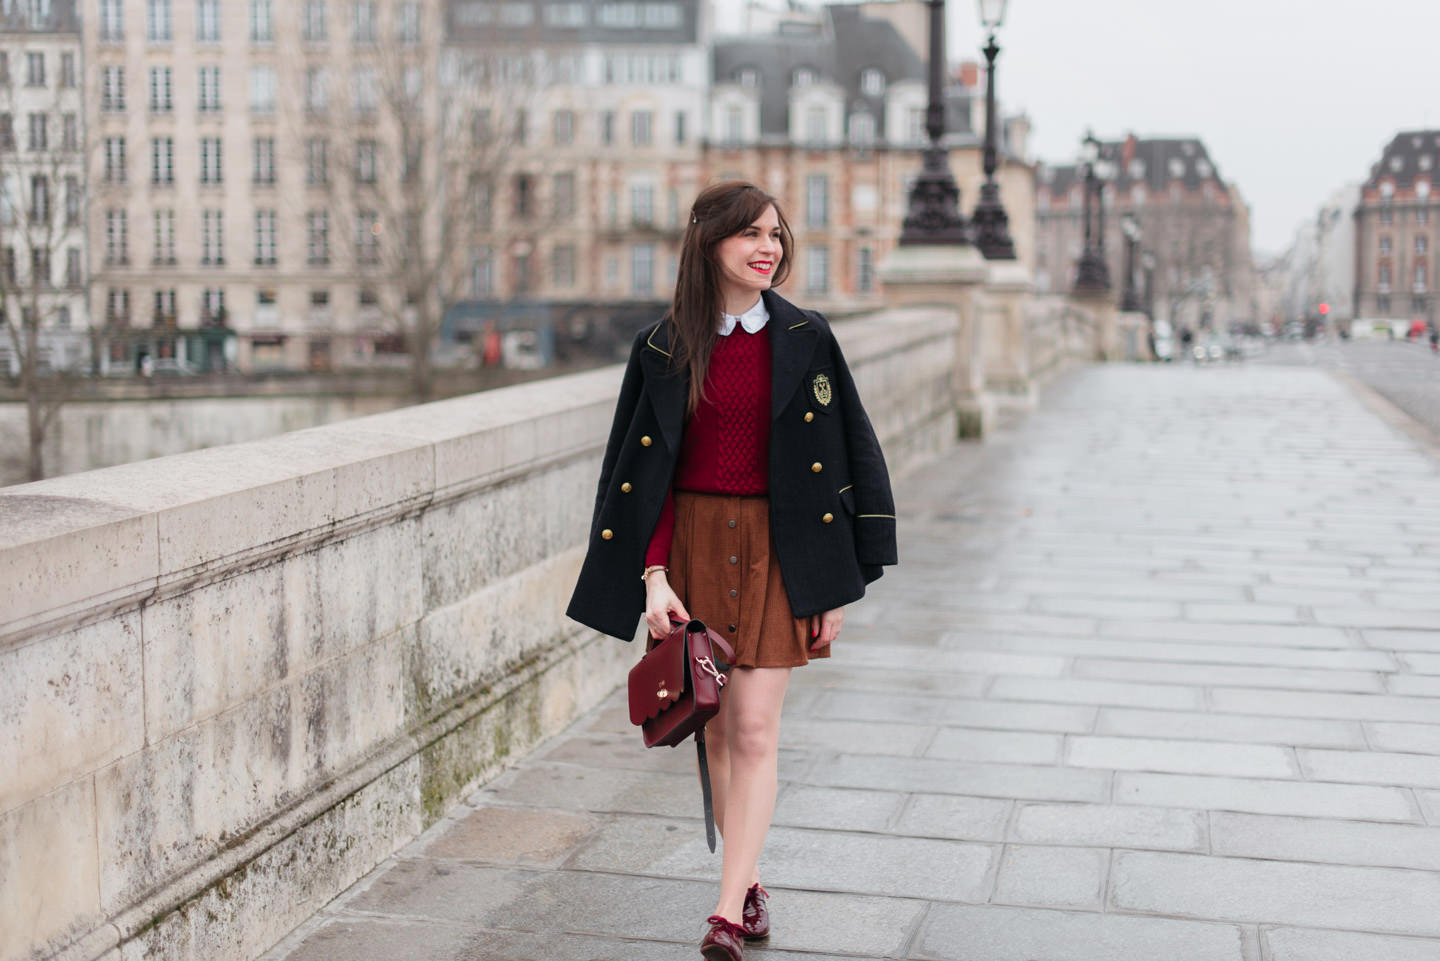 Blog-Mode-And-The-City-Looks-Le-reconfort-des-basiques-6